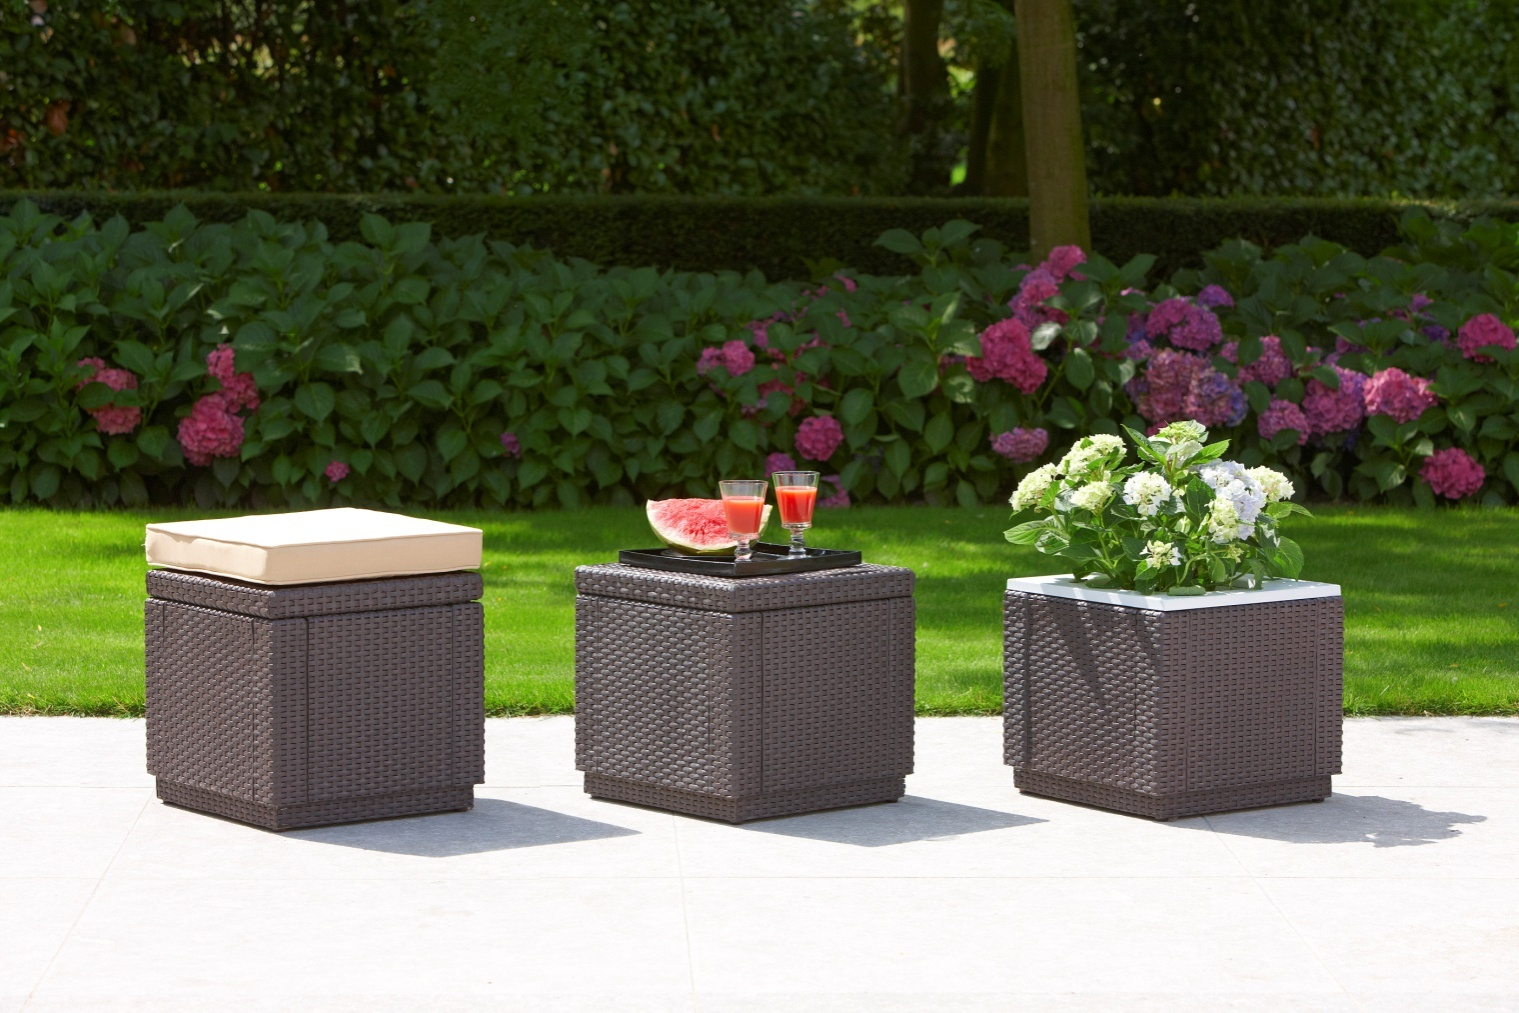 Marvelous The Cube Set (Seating   Storage   Planter)